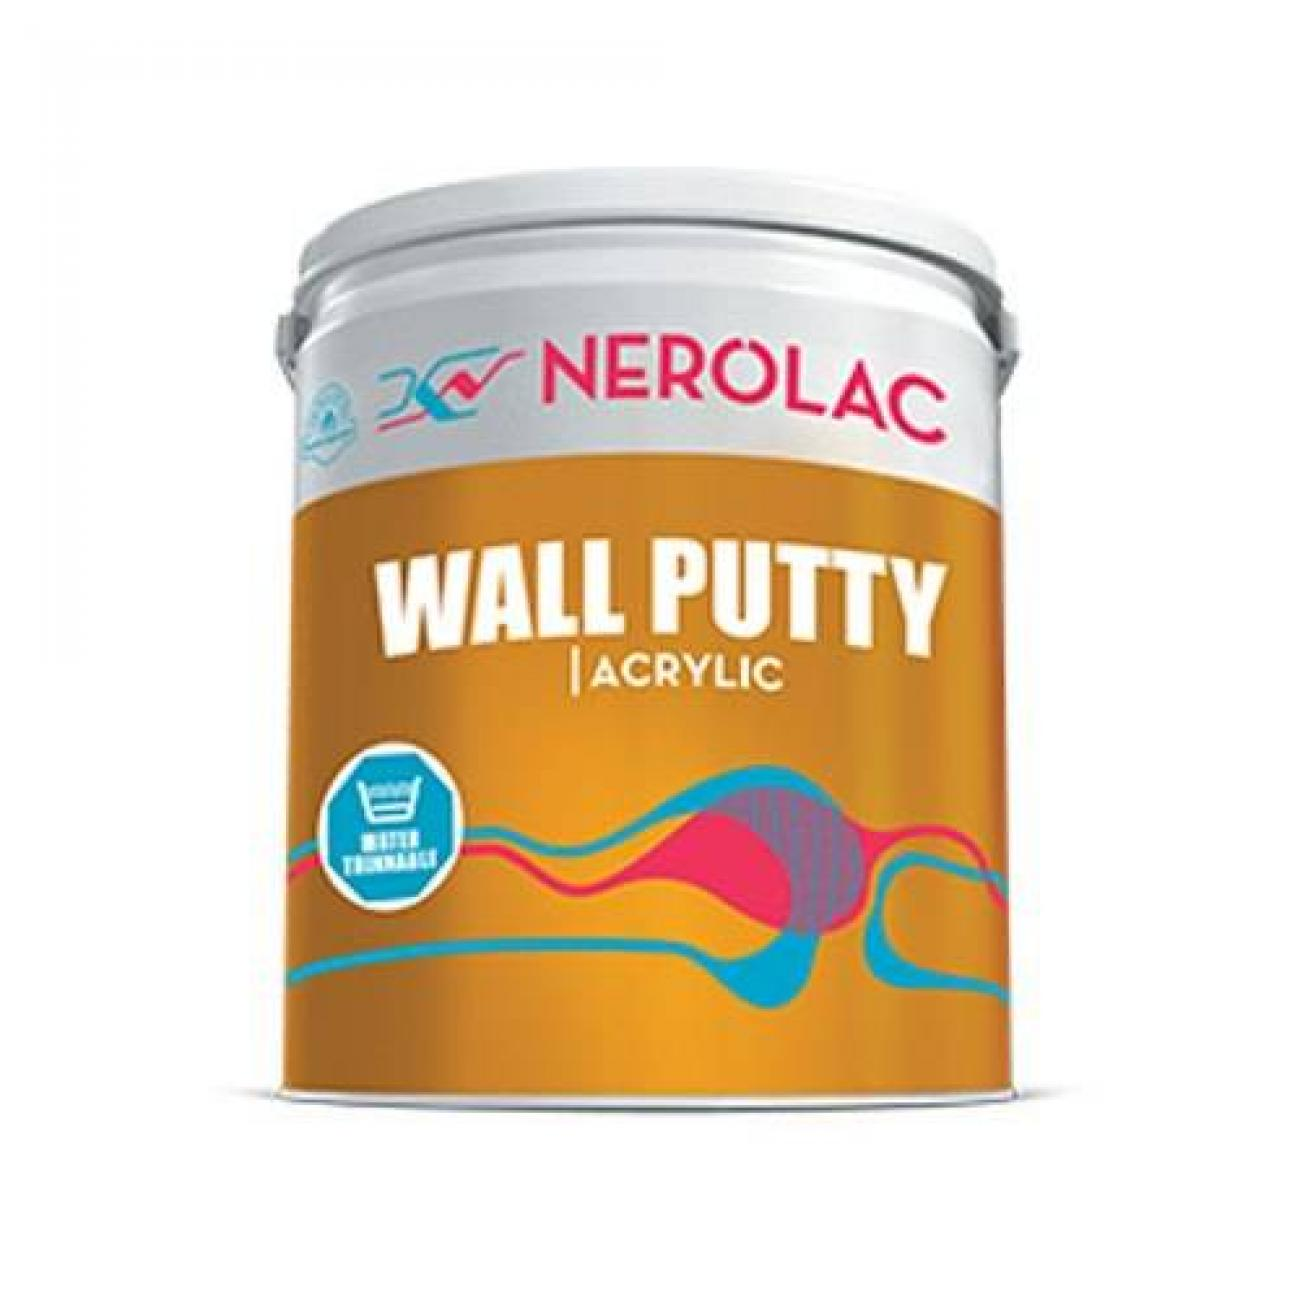 Nerolac_Superior_Smooth_Finish_Cement_Putty